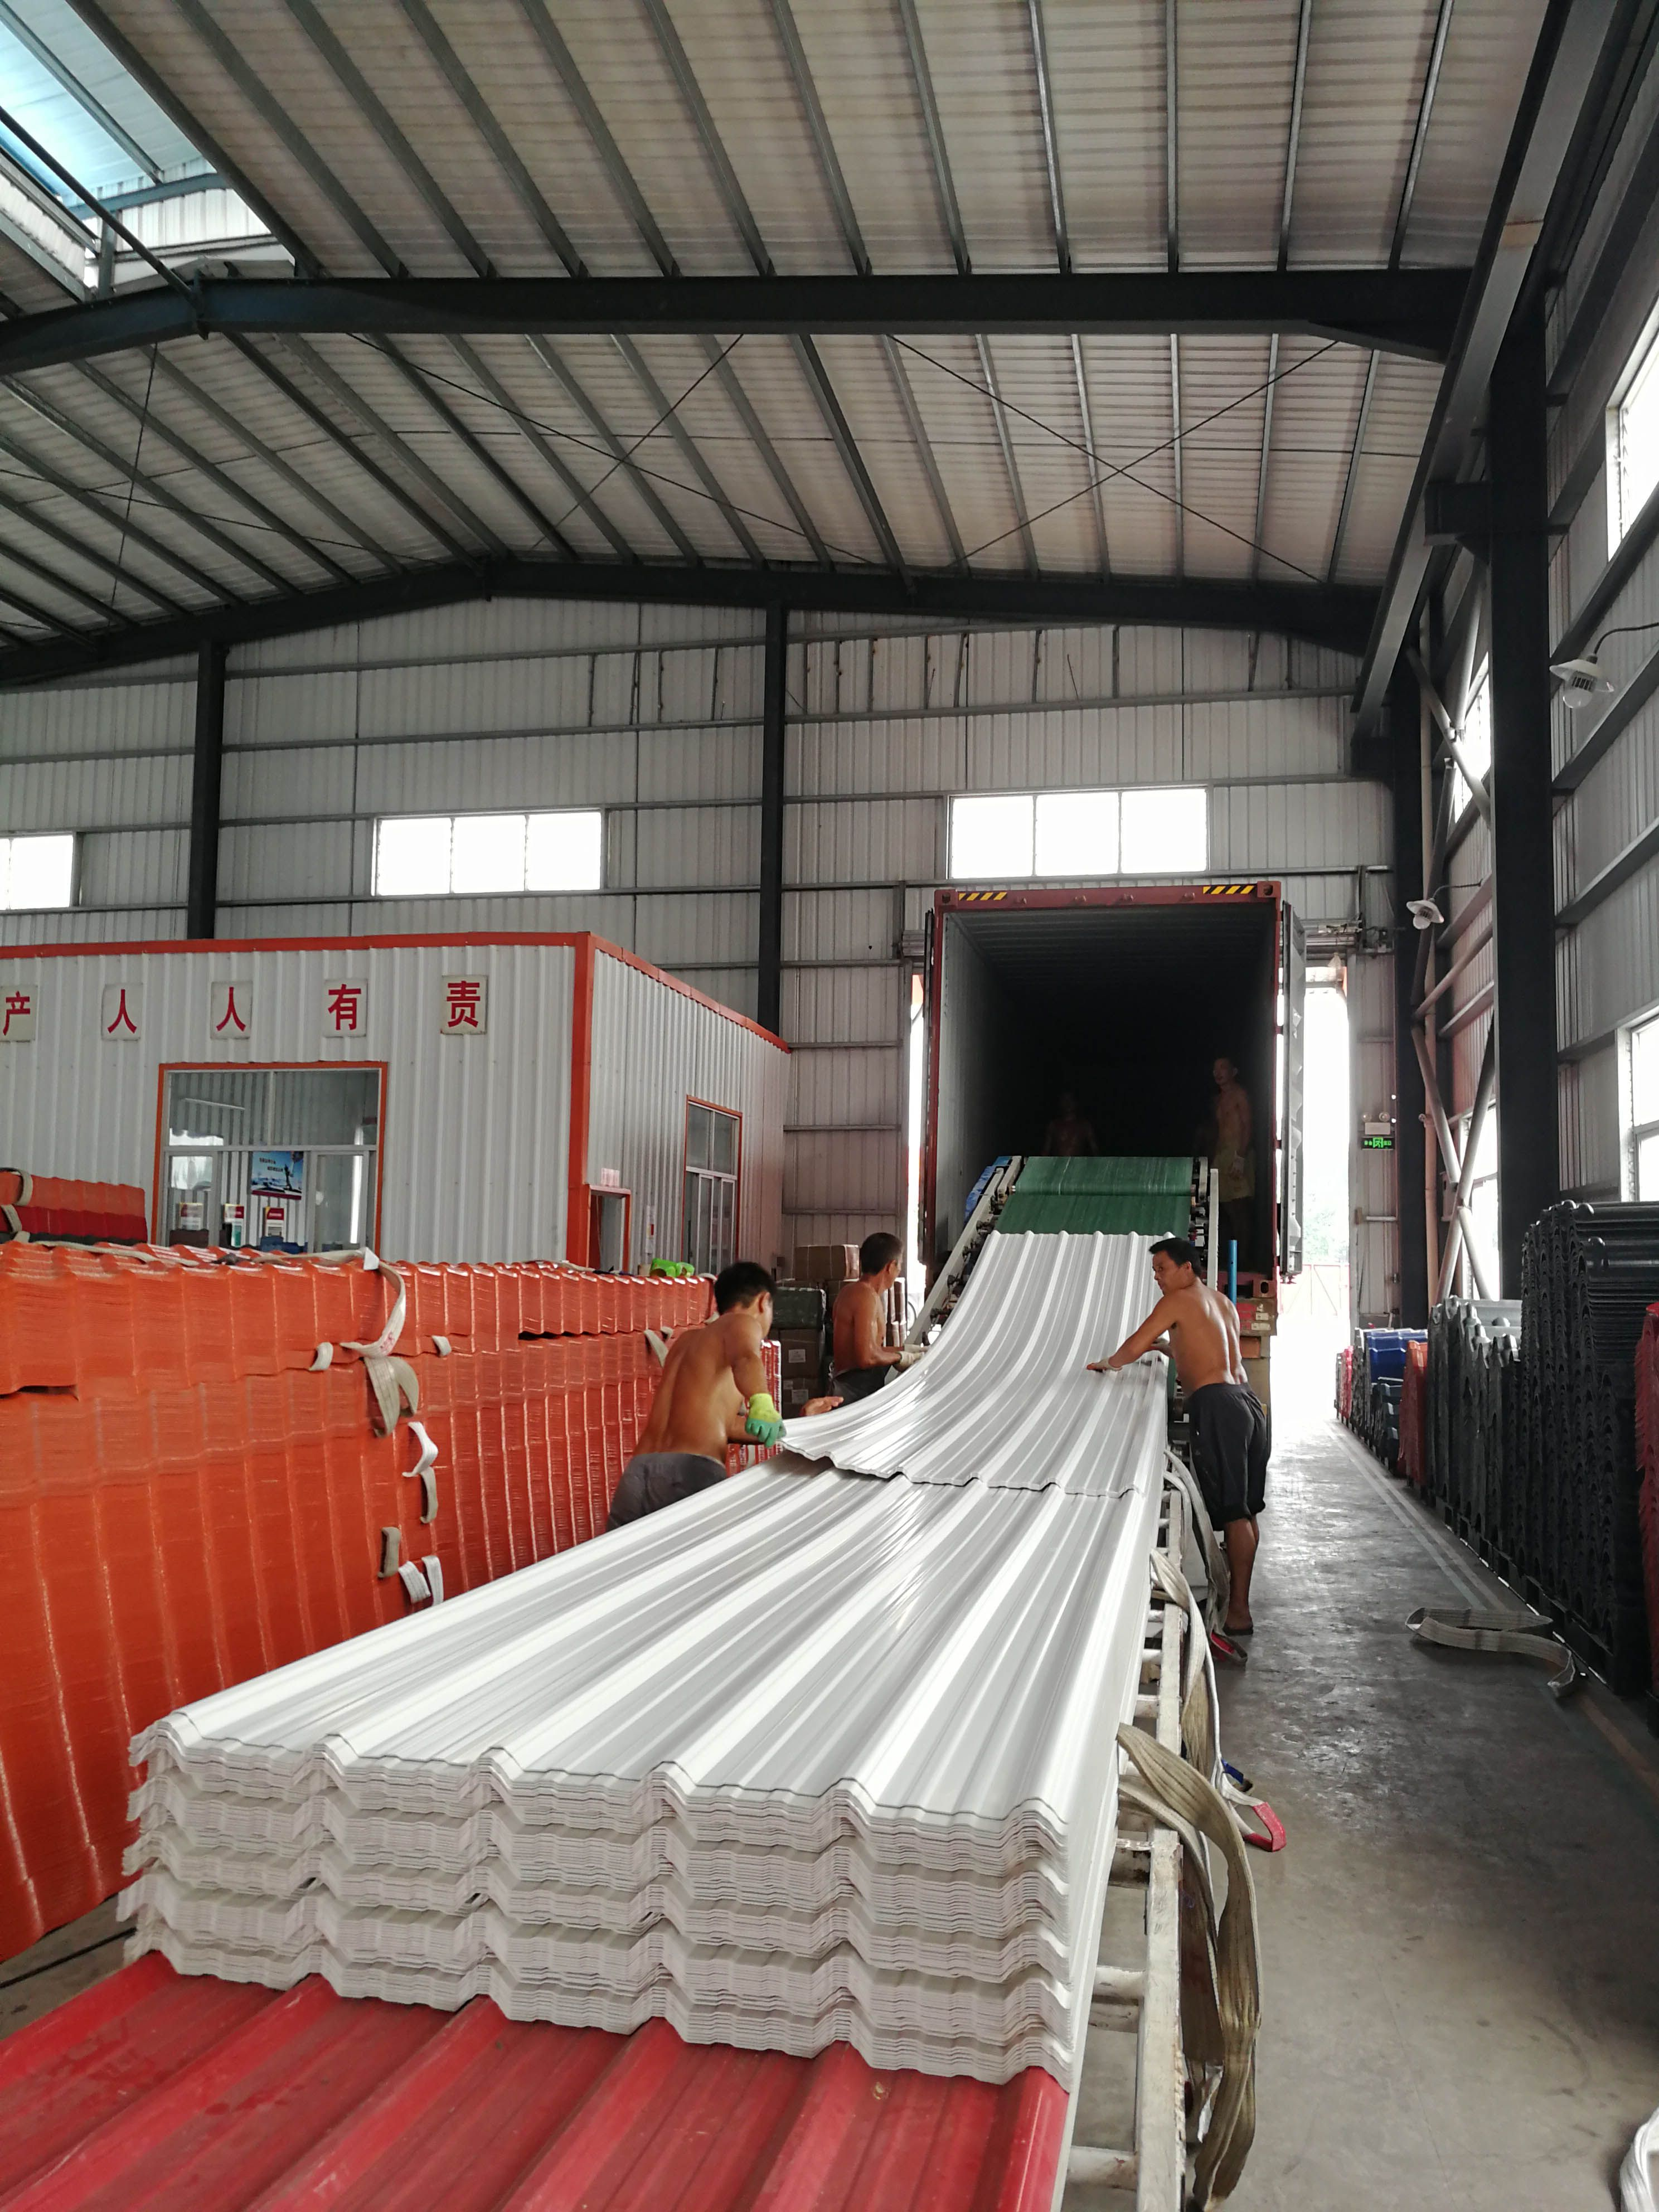 During The Passed 5 Years We Have Accumulated To 200 Customers And Have Had Our Products Distributed To Plastic Roofing Plastic Roof Tiles Tile Manufacturers